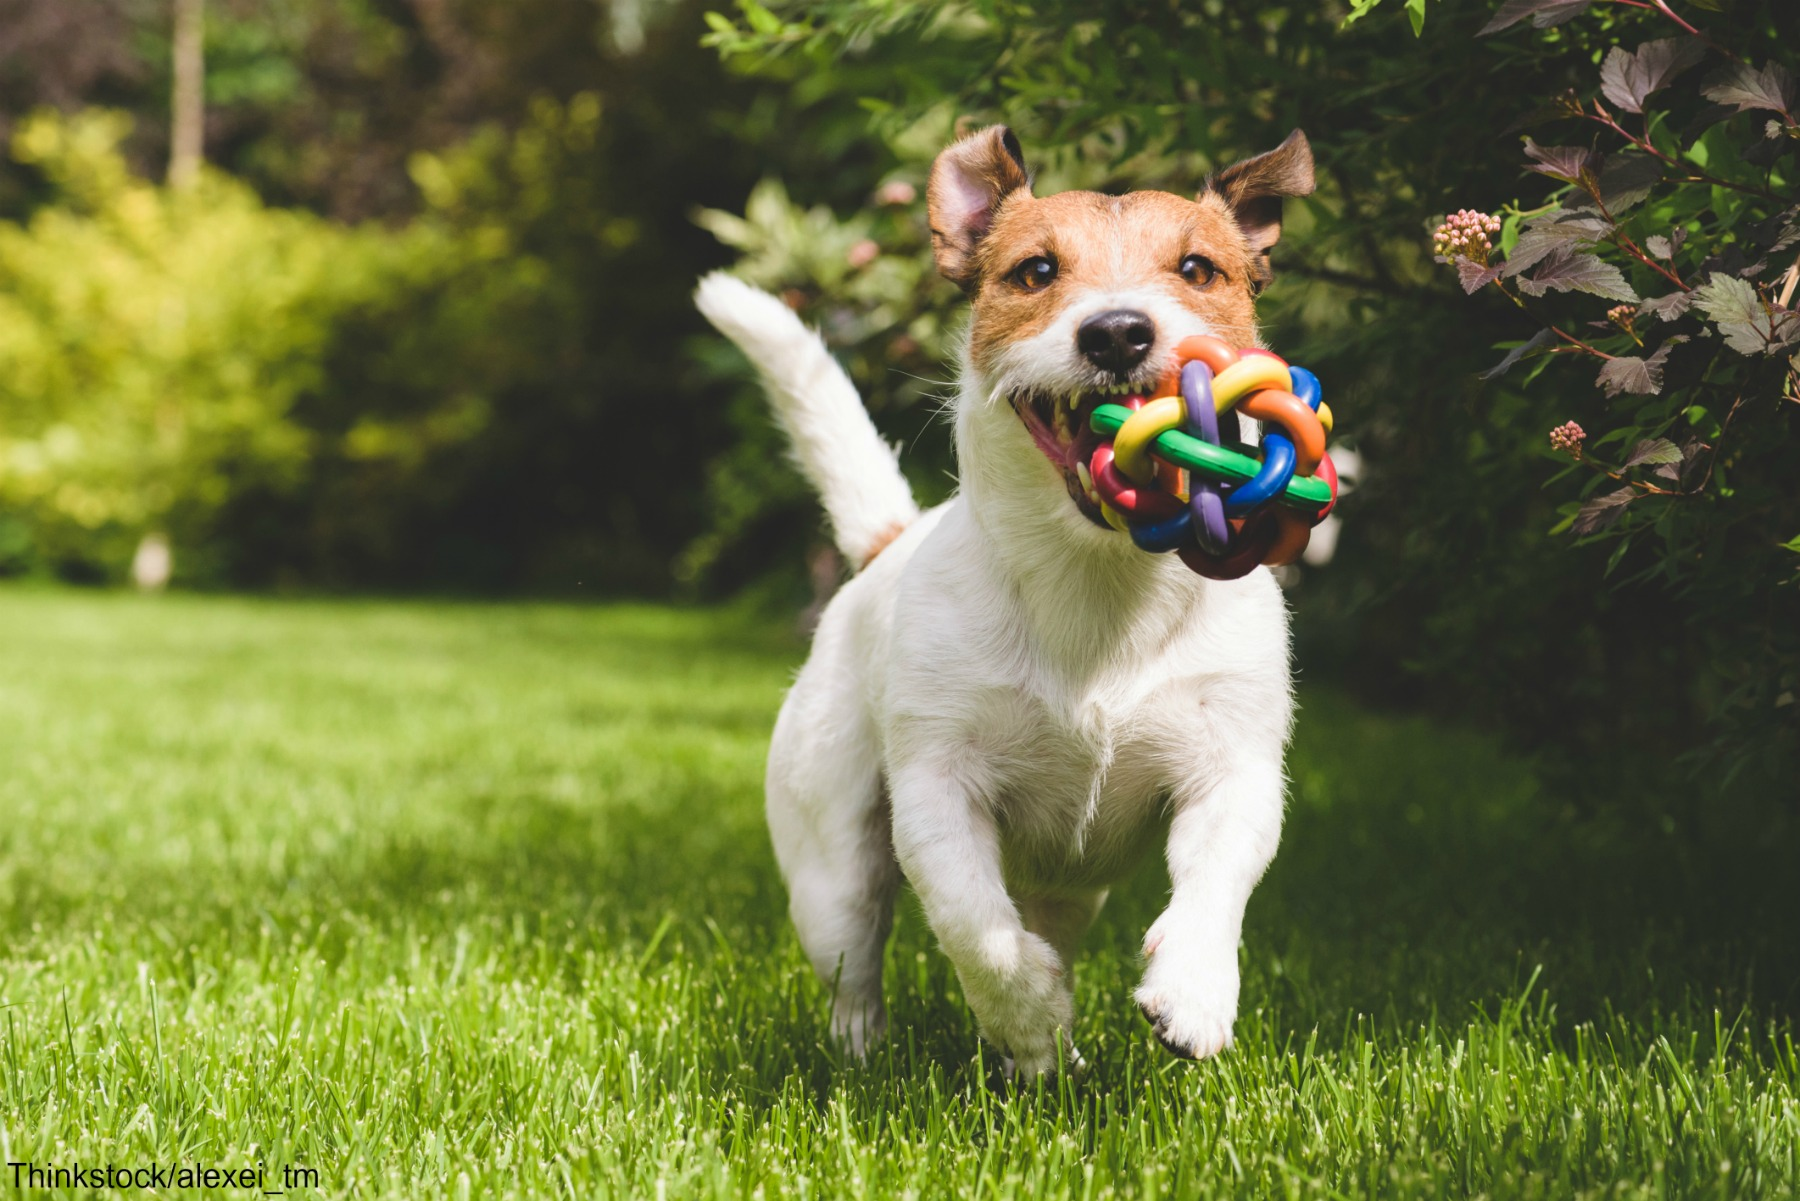 Dog with colorful ball at park